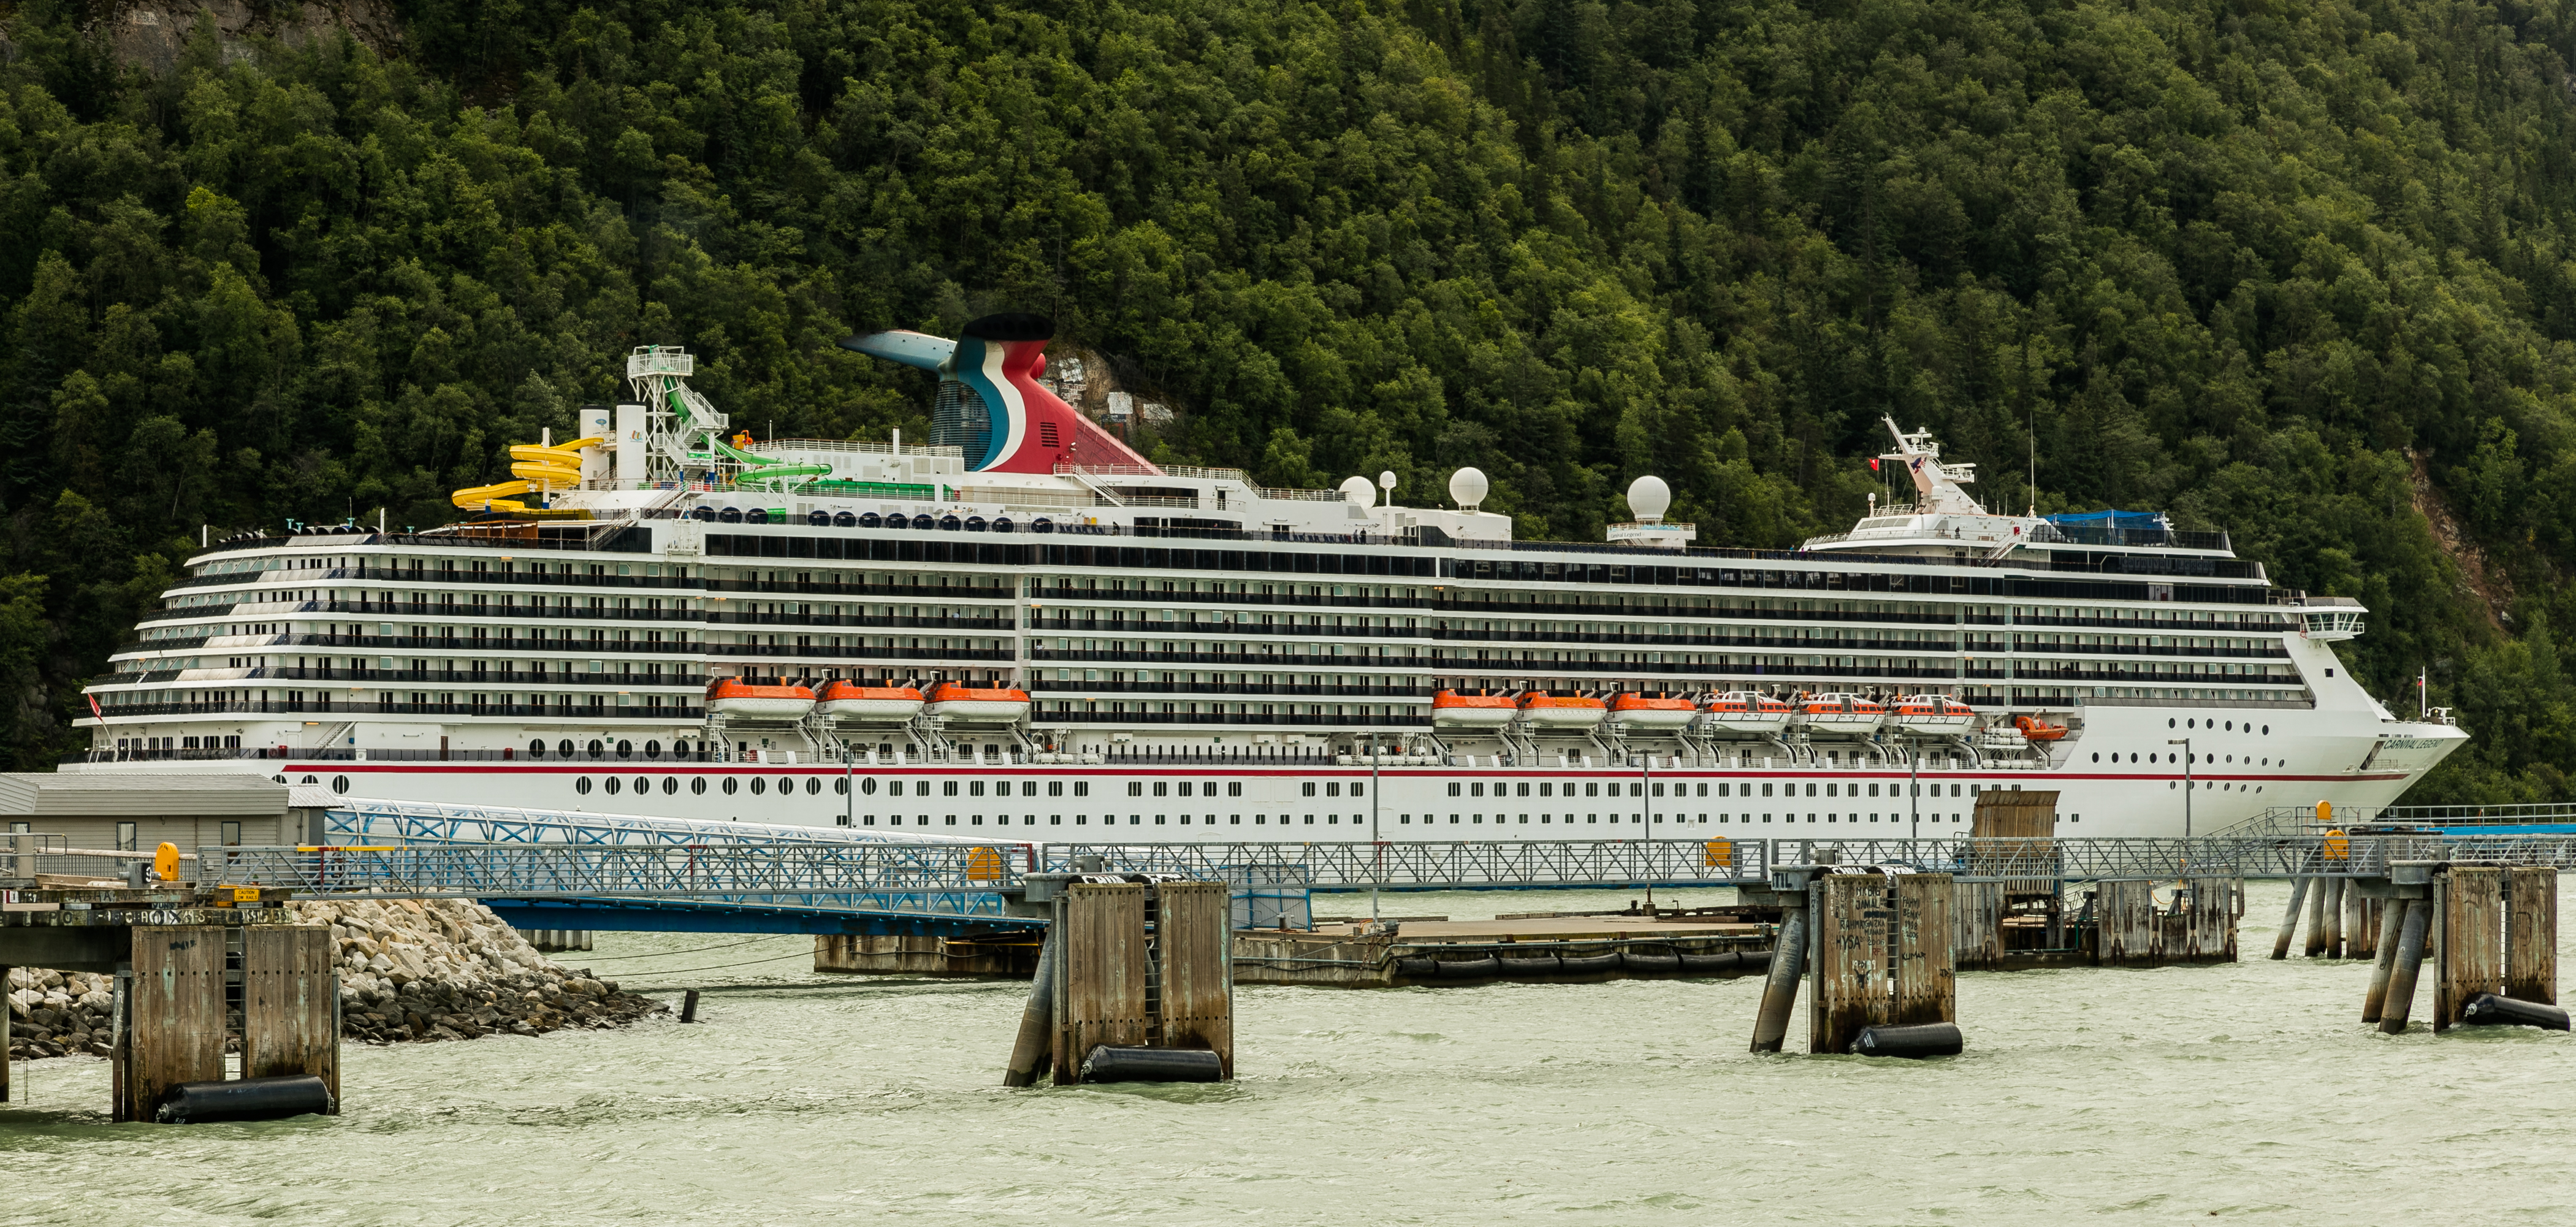 Carnival Legend - Wikipedia